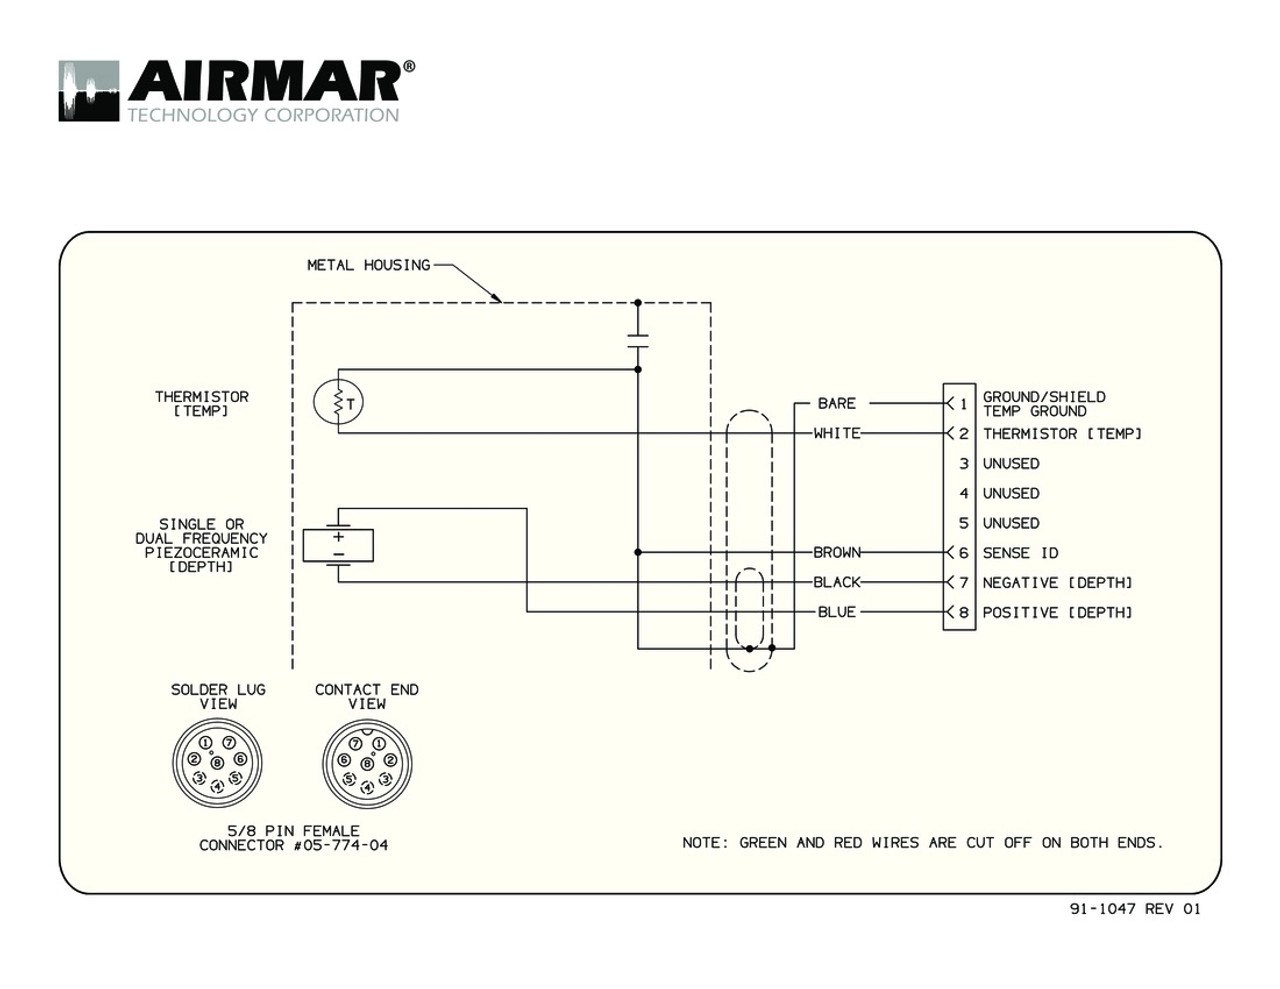 airmar wiring diagram garmin b117 8 pin d t blue bottle marine 8 [ 1280 x 989 Pixel ]